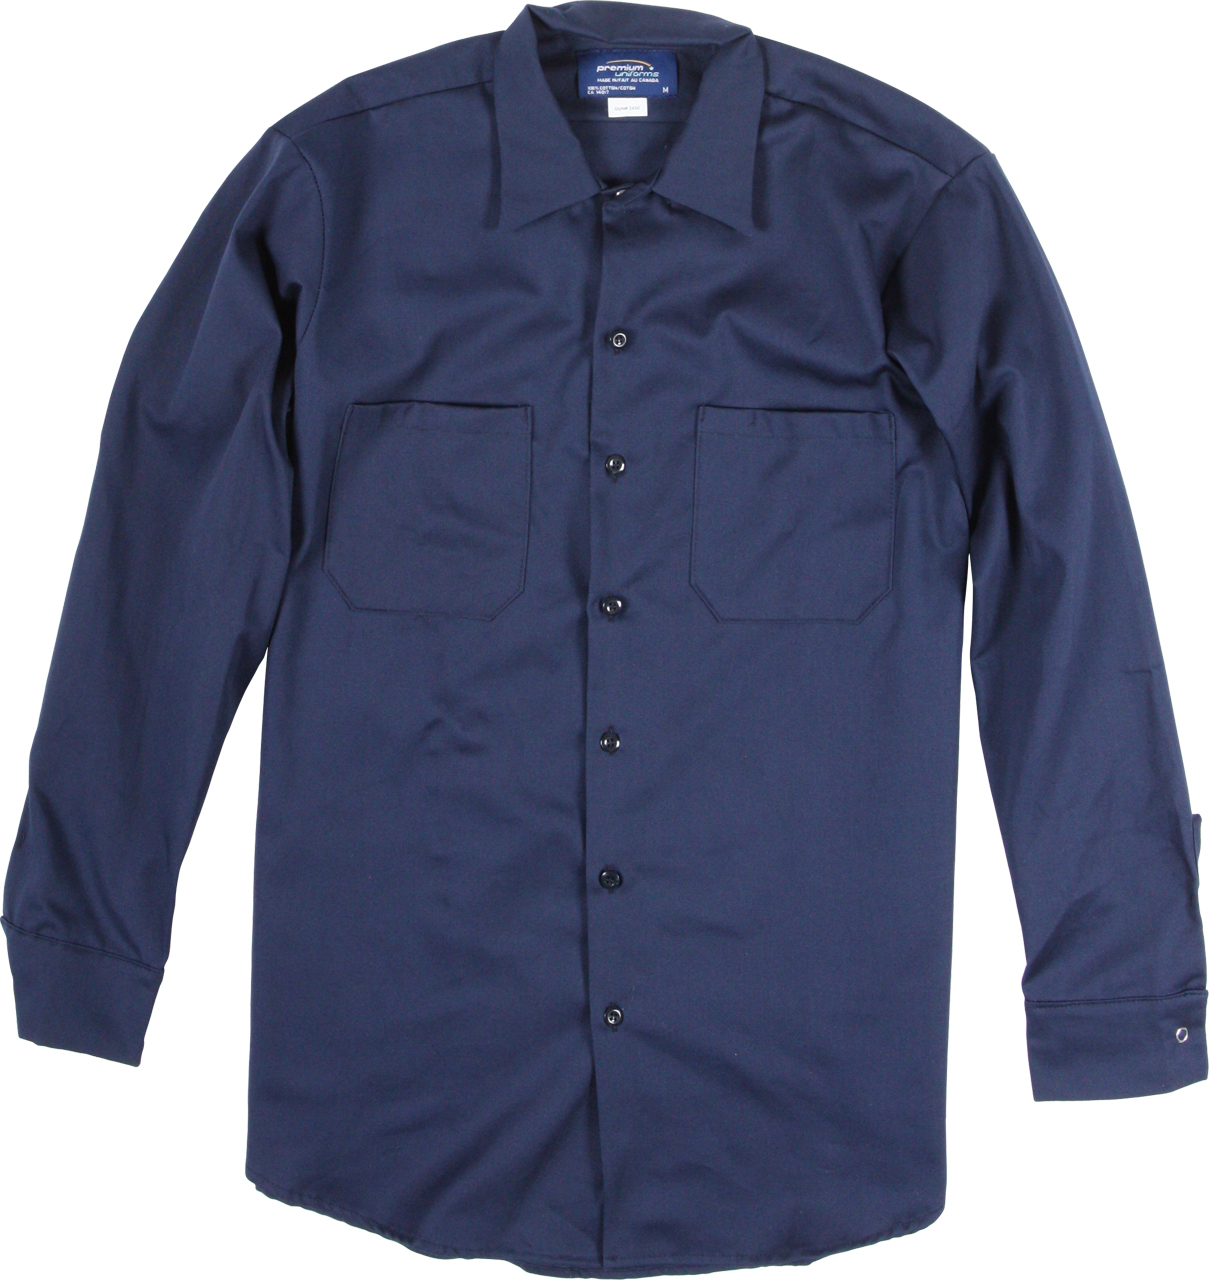 Picture of Premium Uniforms 100% Cotton Long Sleeve Work Shirt